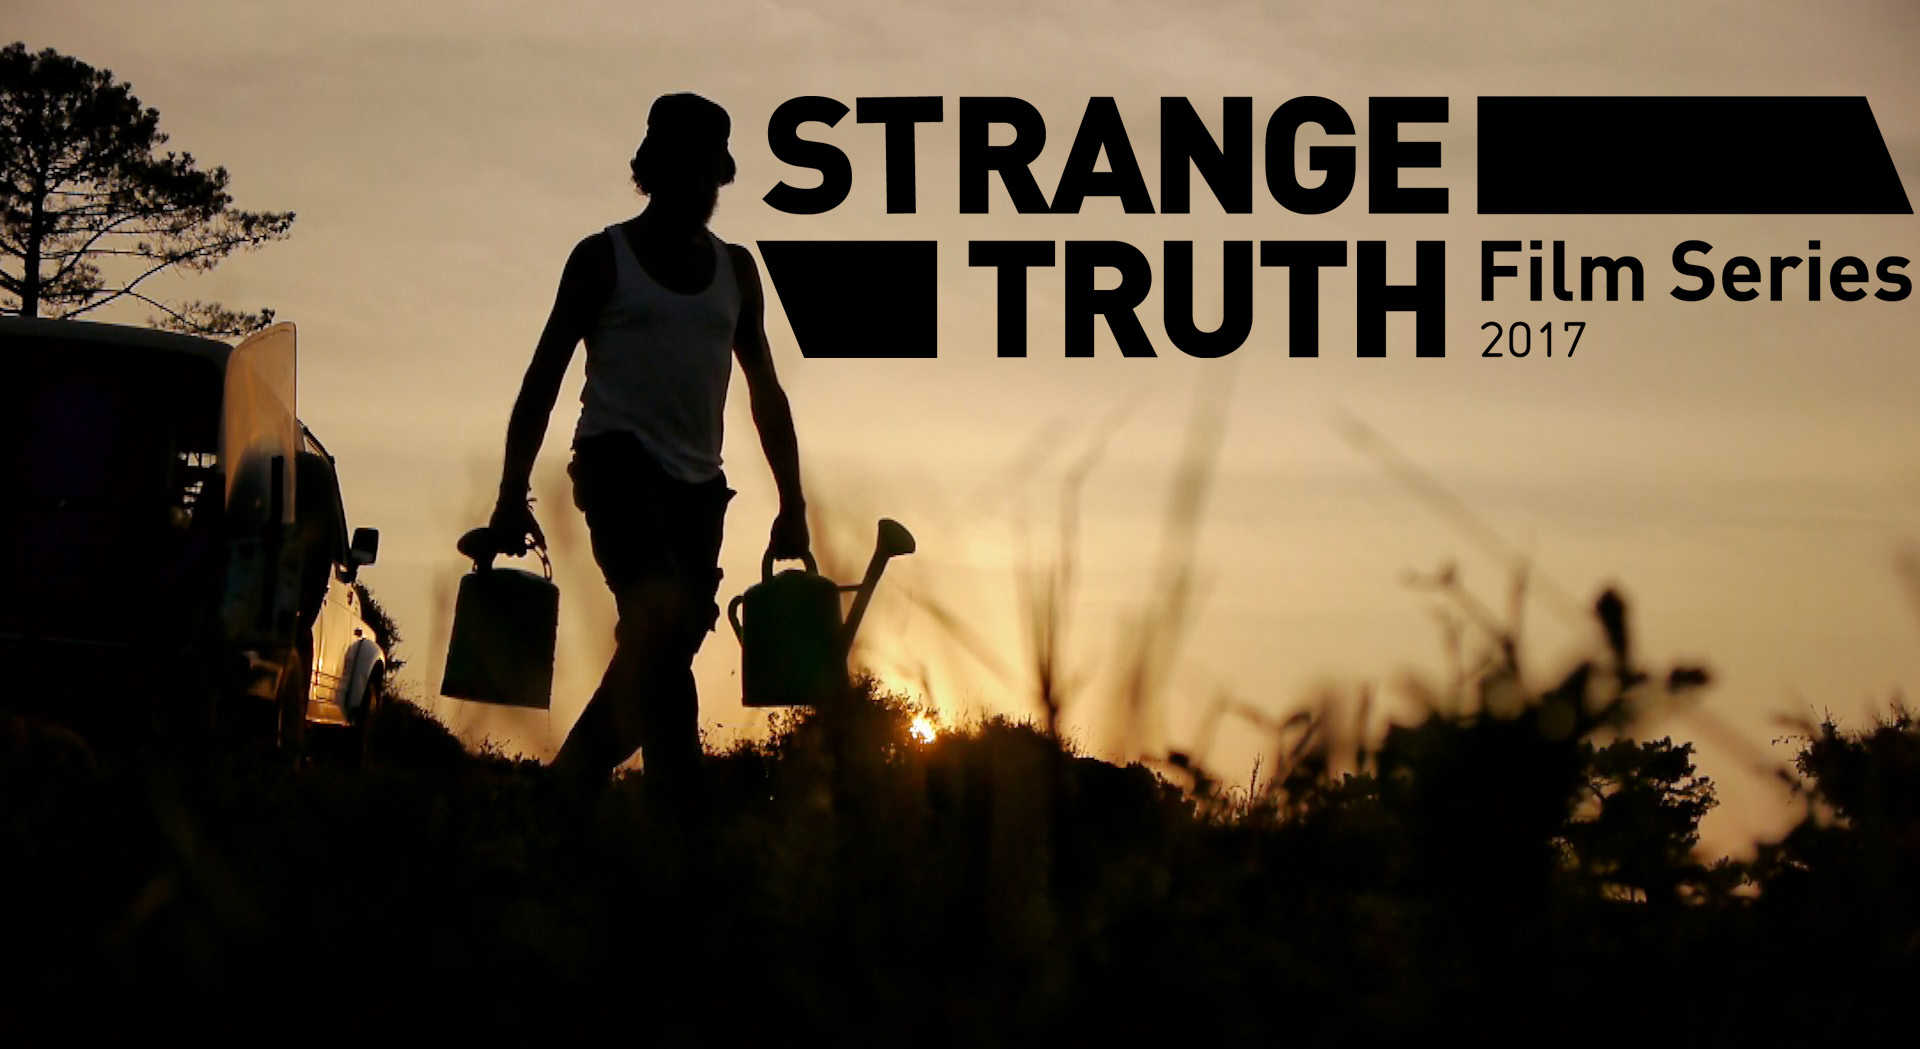 STRANGE TRUTH Film Series, 2017